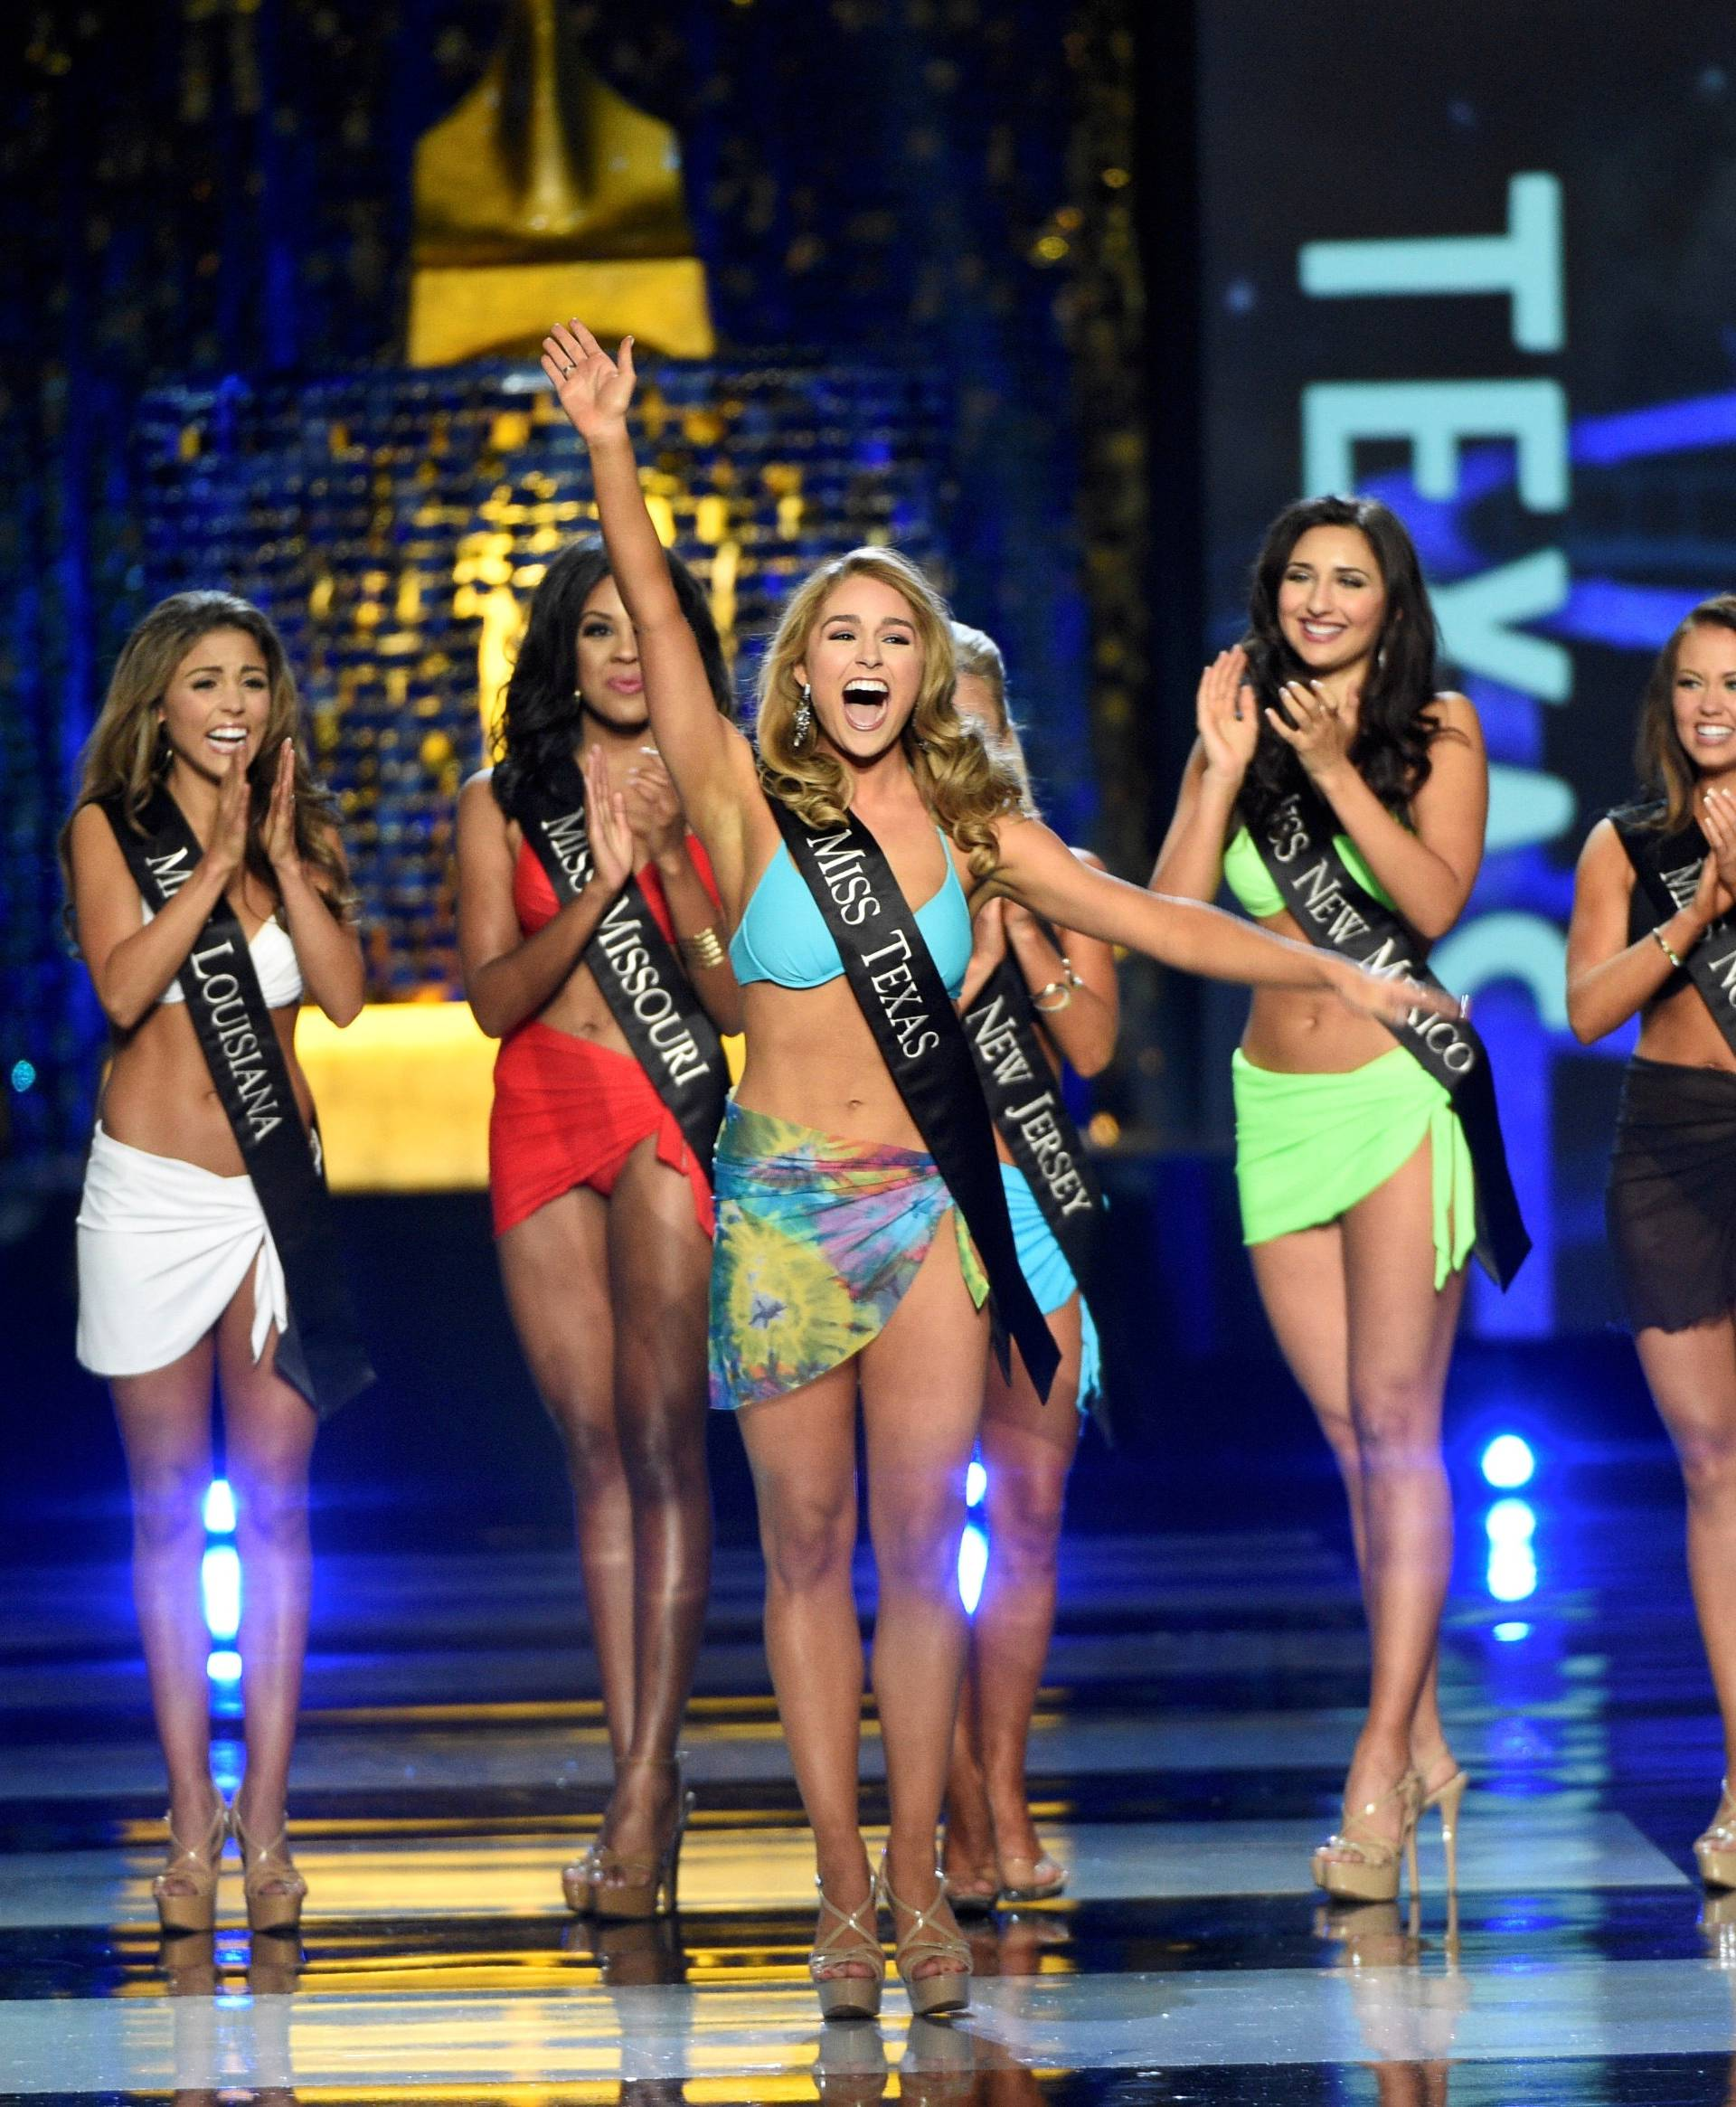 FILE PHOTO: Miss Texas Margana Wood reacts after advancing from the swimsuit component of the Miss America competition in Atlantic City